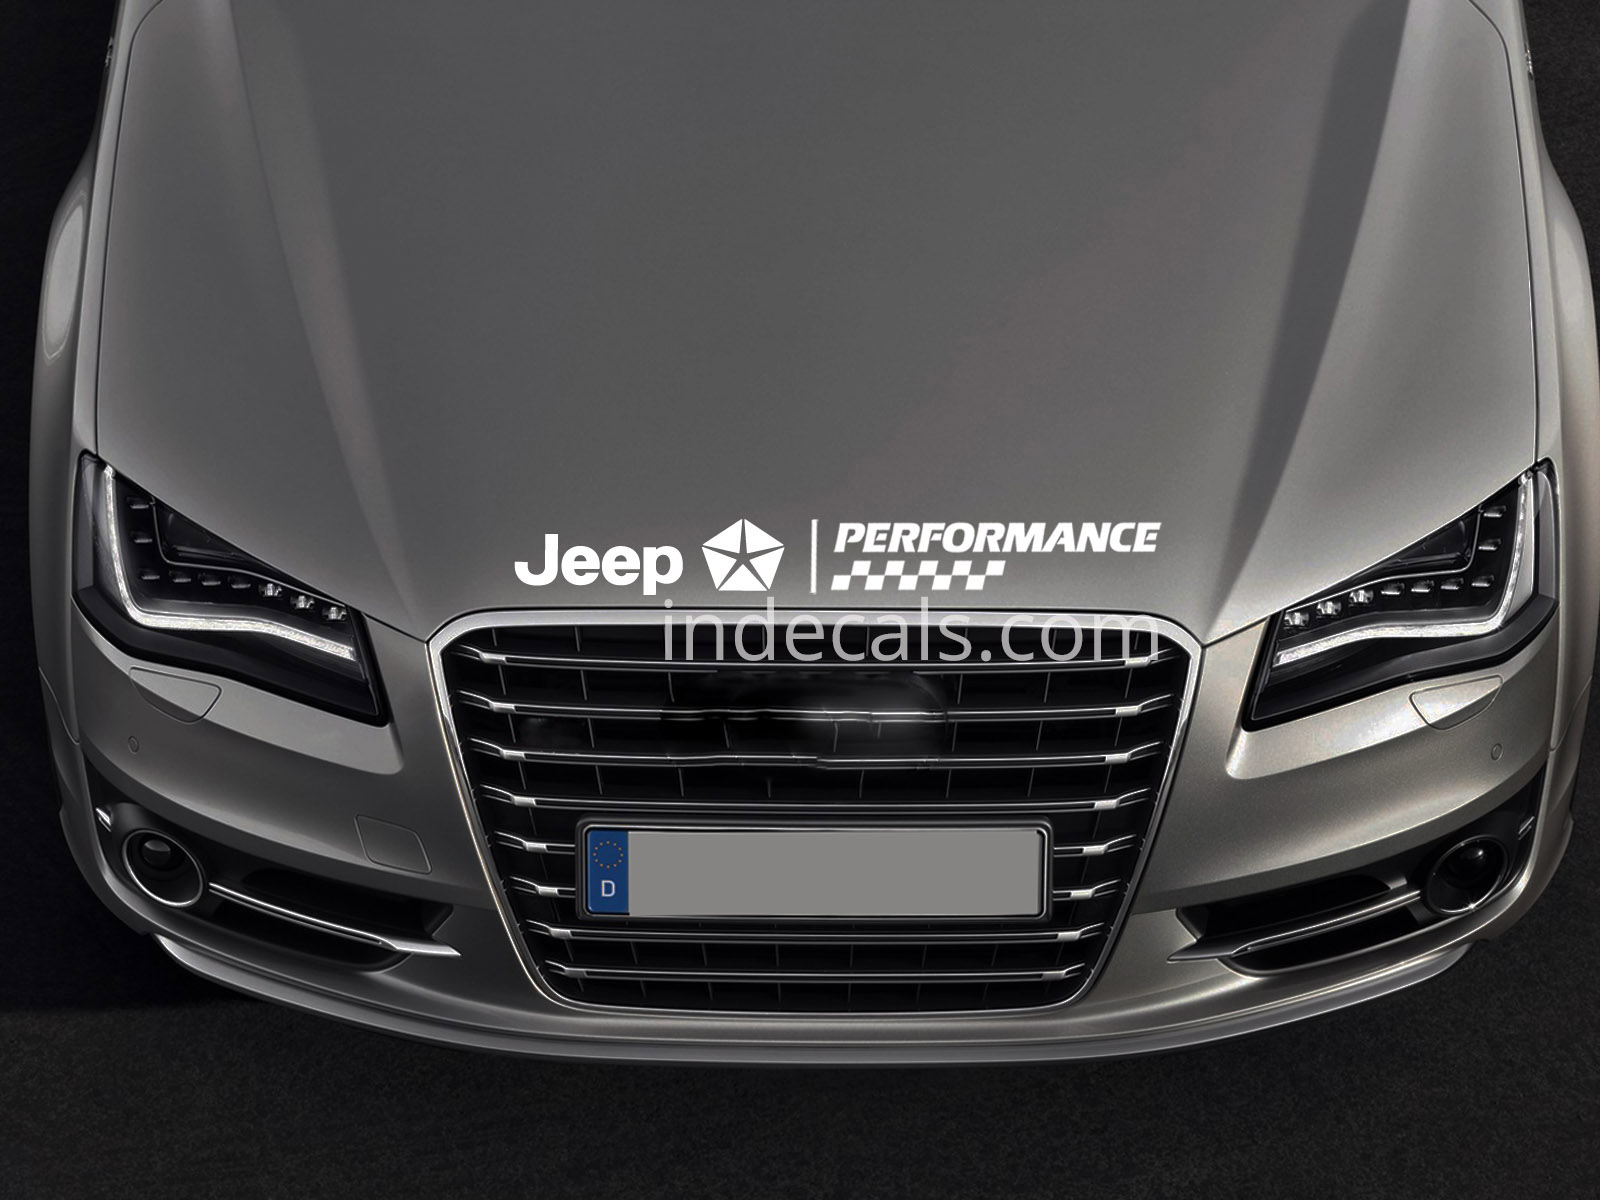 1 x Jeep Peformance Sticker for Bonnet - White